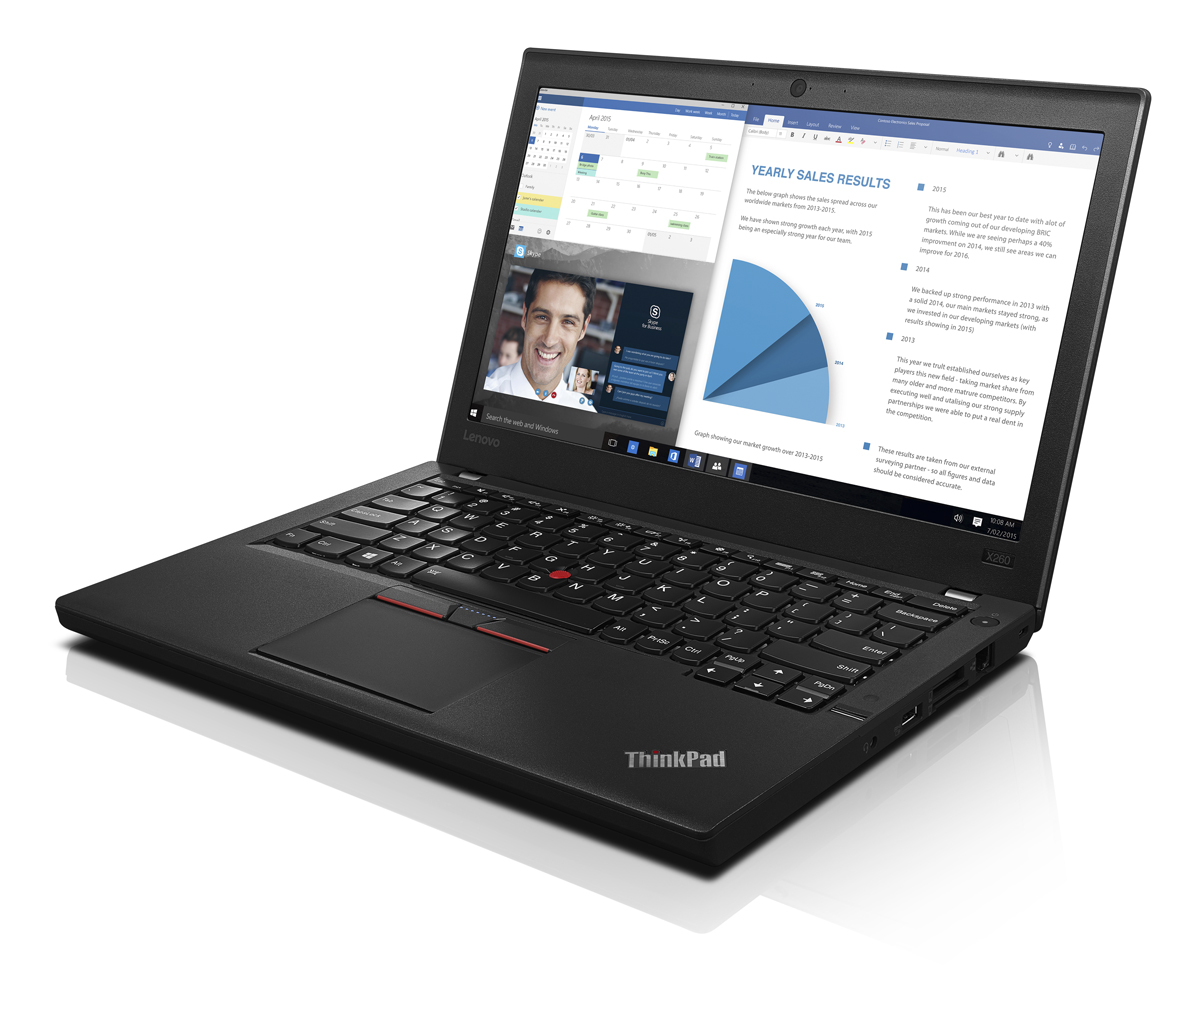 lenovo-thinkpad-t460